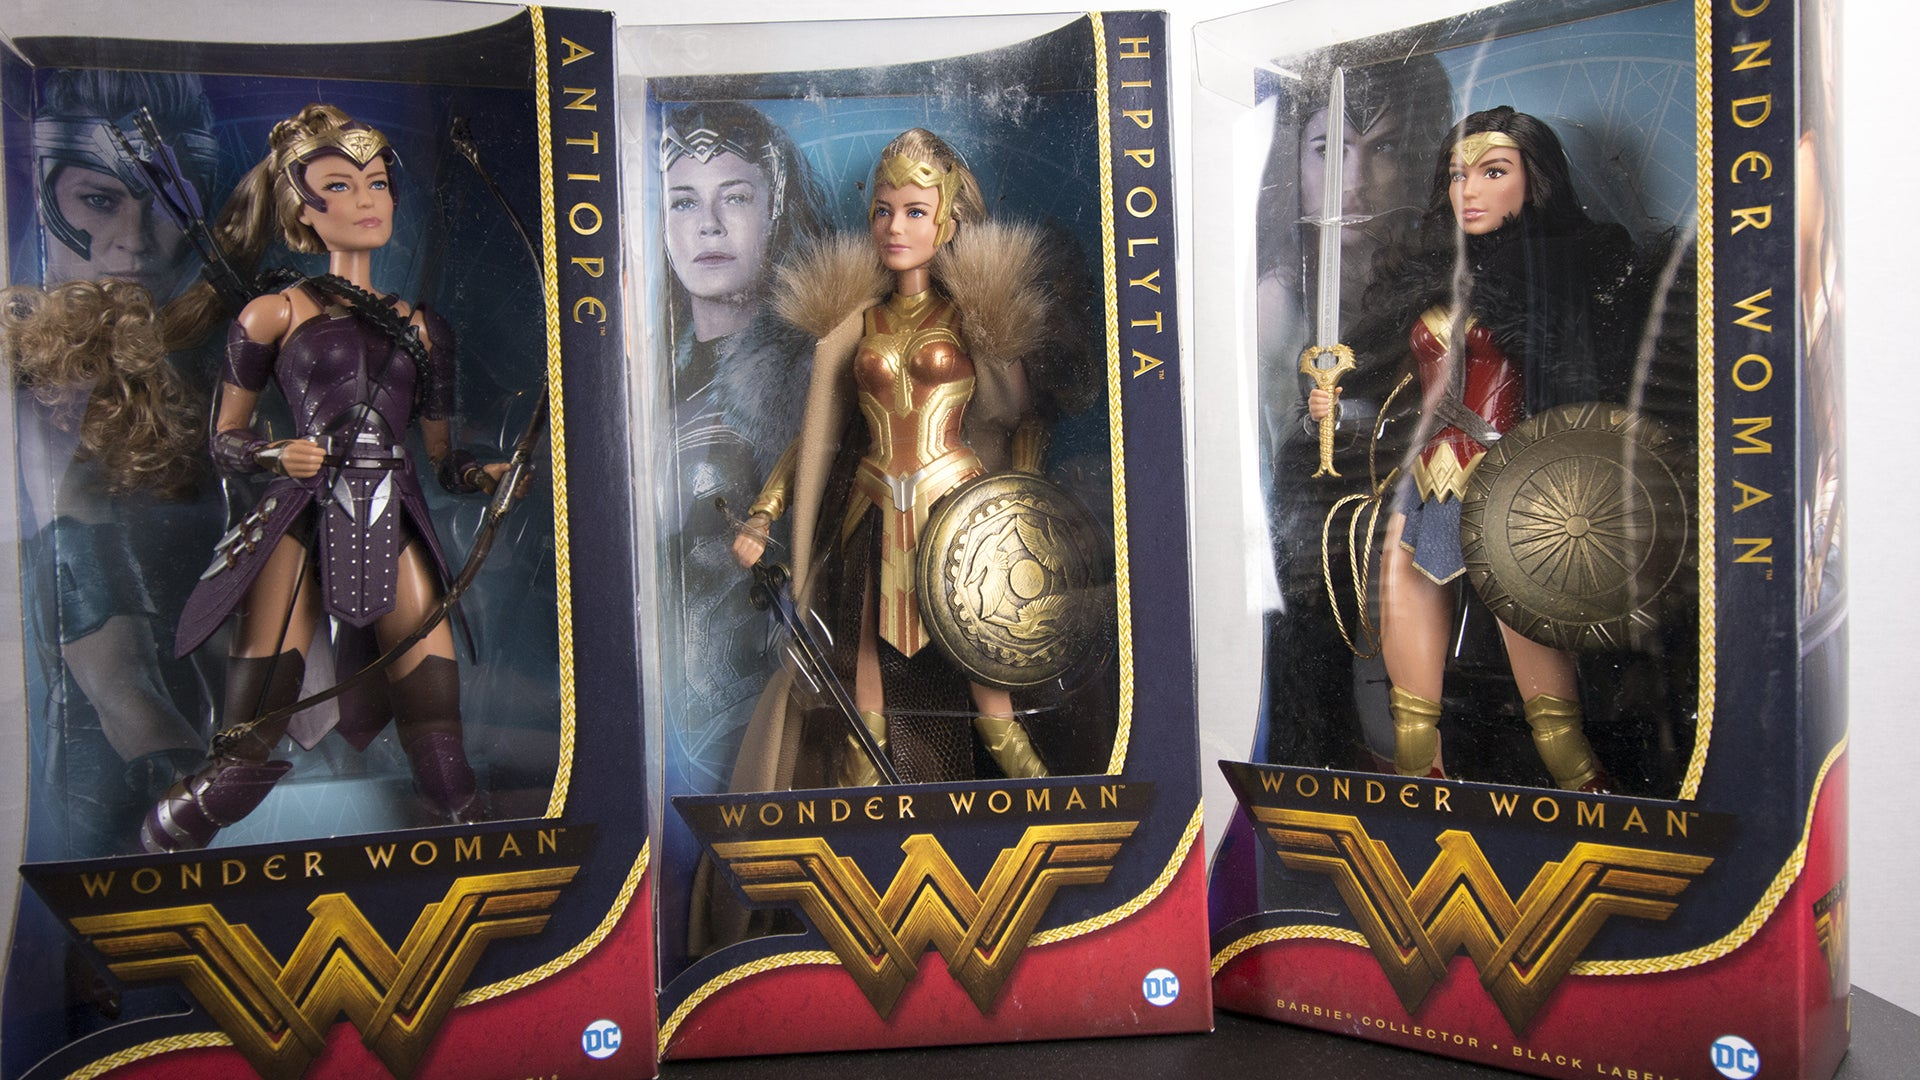 Doll review 2017 black label queen hippolyta doll face three - Priced At Us44 95 59 The Black Label Wonder Woman Collection Features Dolls That Straddle The Line Between For Play And For Display Hippolyta